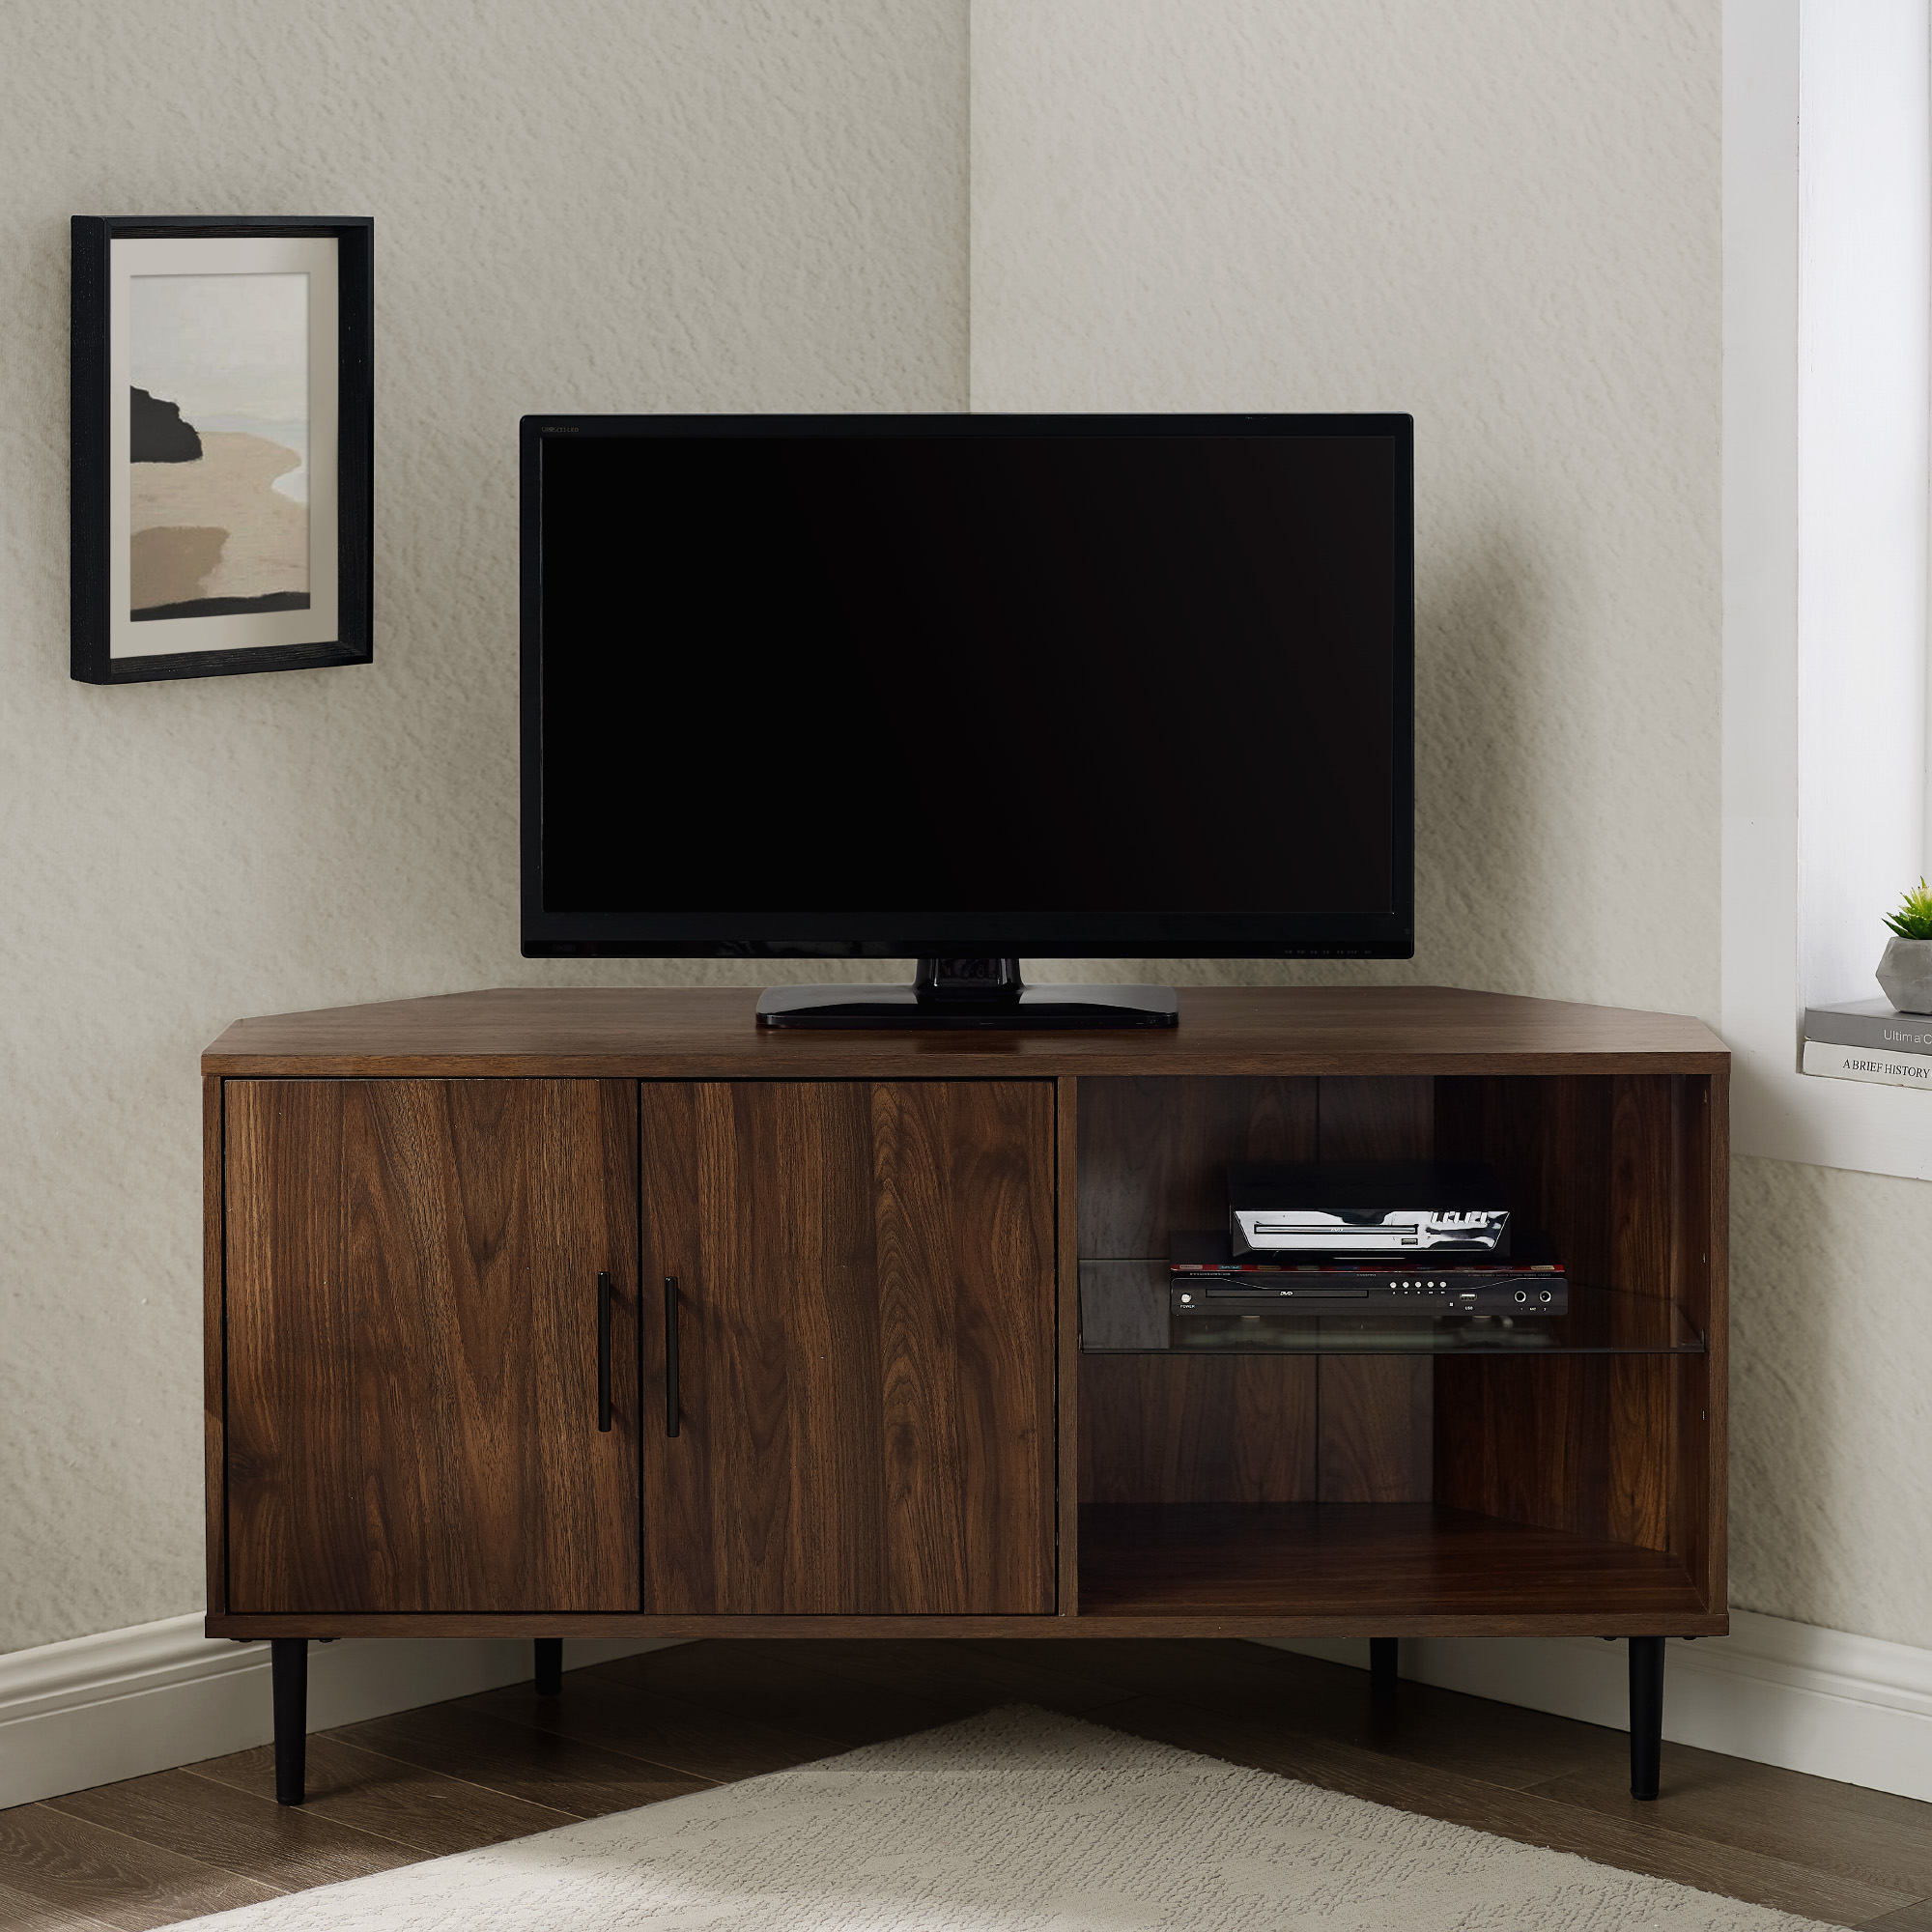 """Manor Park Basie 2 Door Corner Tv Stand For Tvs Up To 55 Within Baba Tv Stands For Tvs Up To 55"""" (View 8 of 15)"""